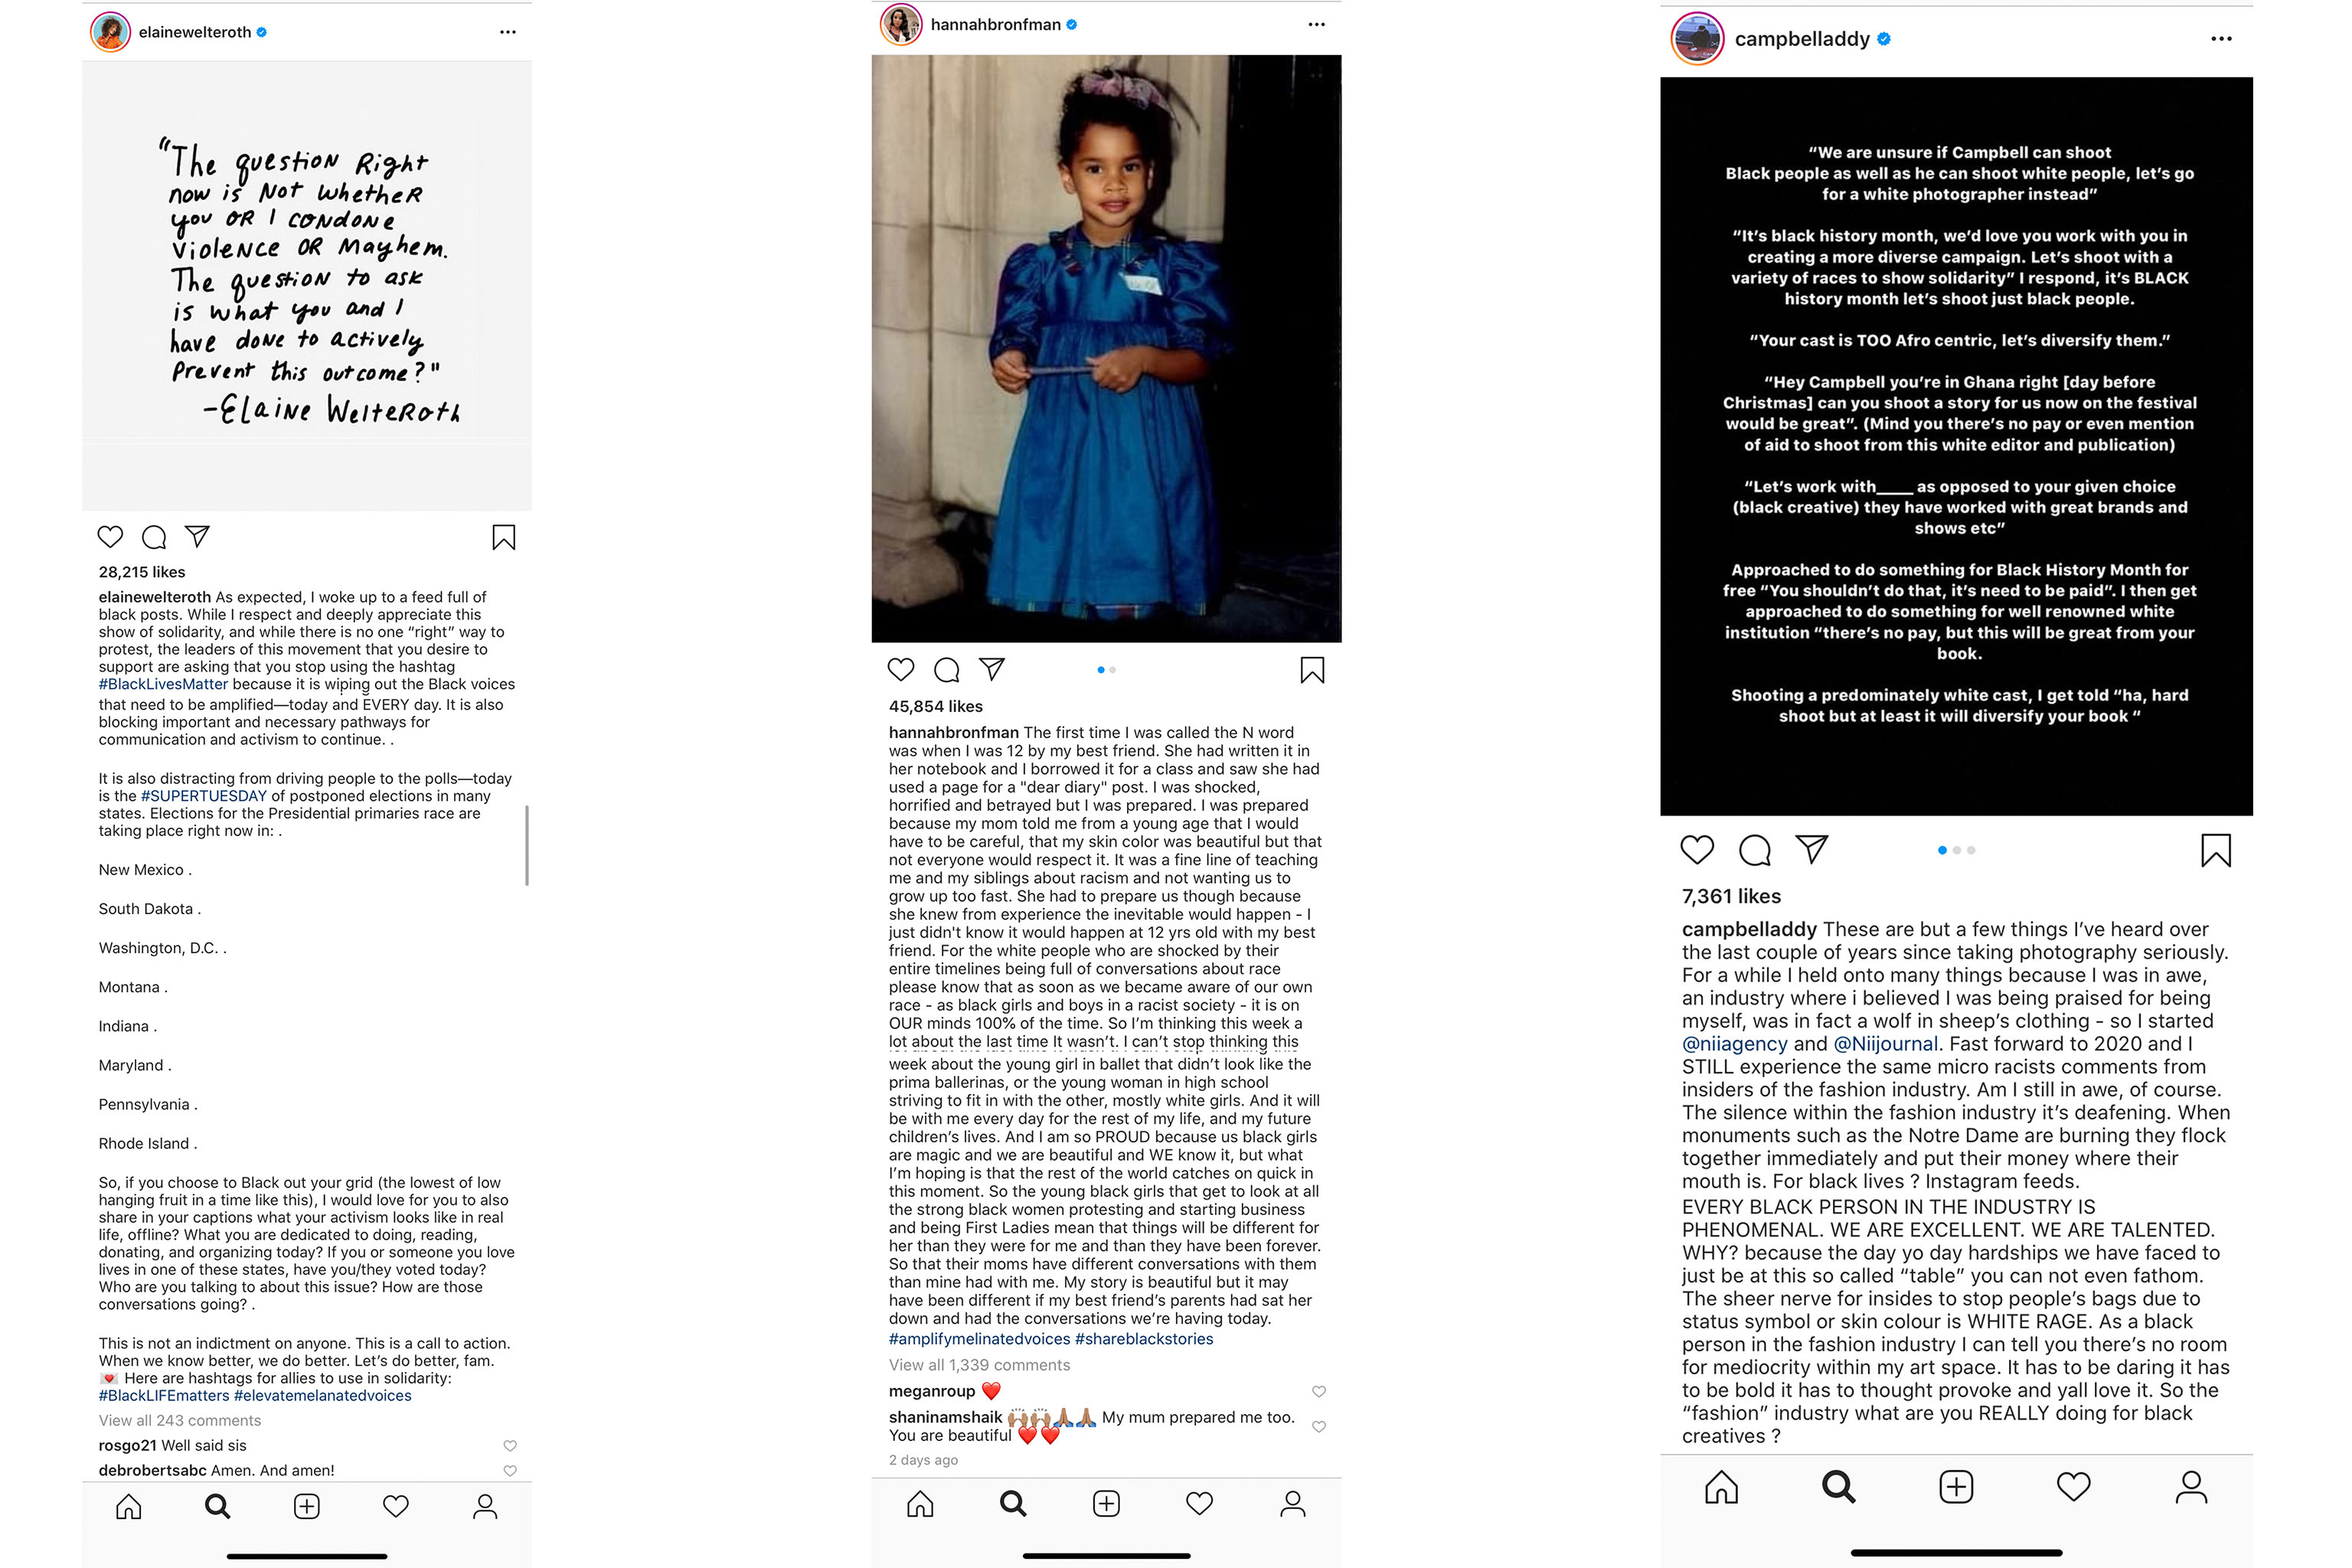 Instagram posts from Elaine Welteroth, Hannah Bronfman, and Campbell Addy.